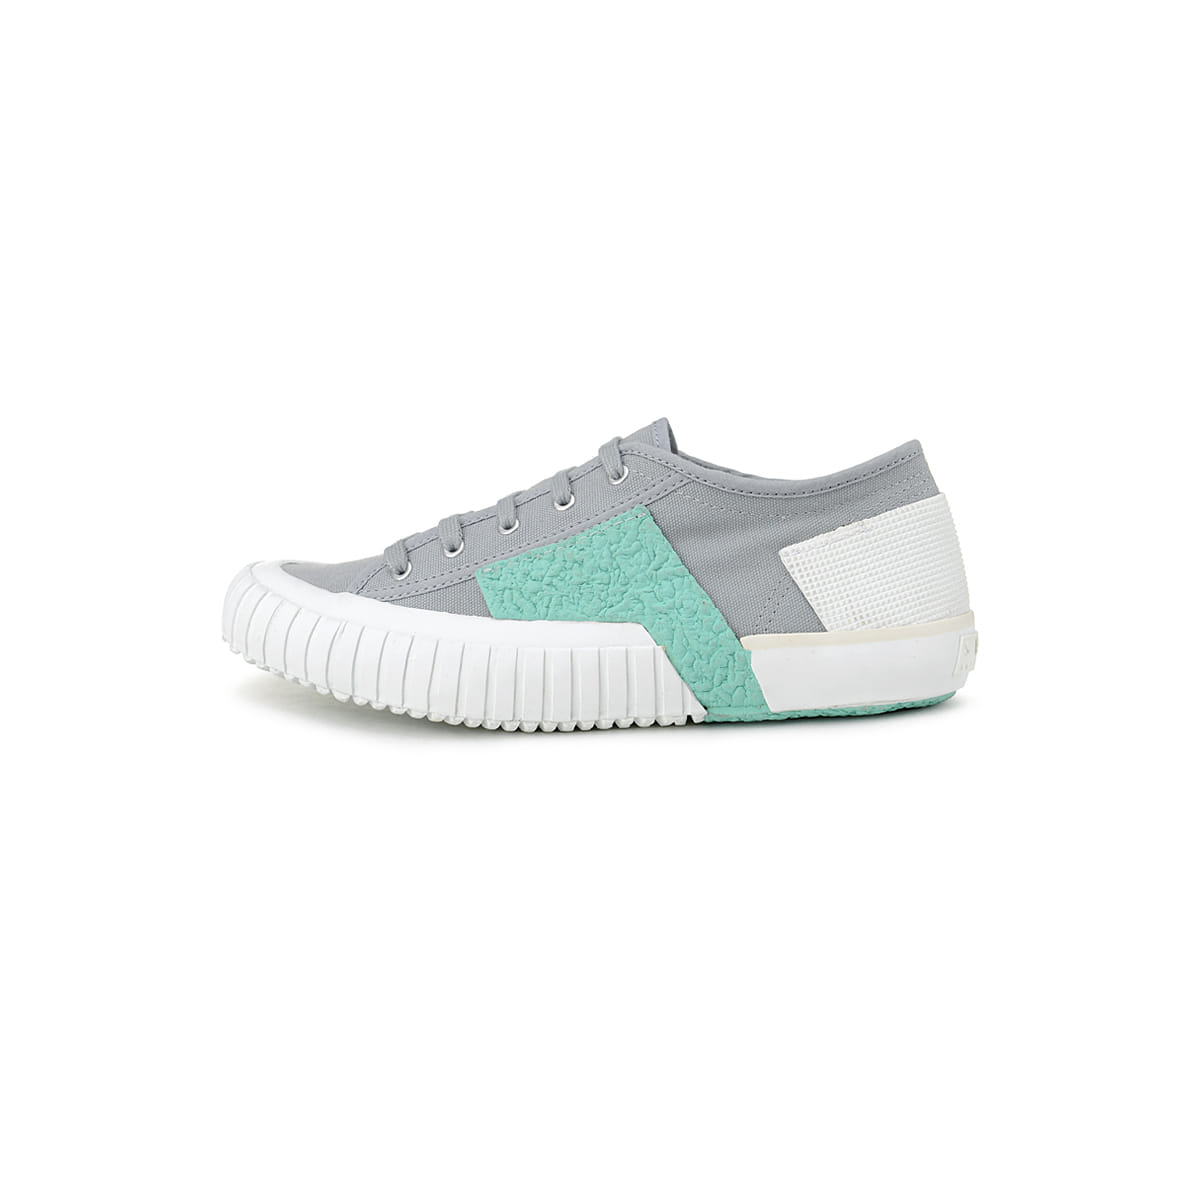 [SEOK] DECON LOW 'LT GREY / TIFFANY BLUE'